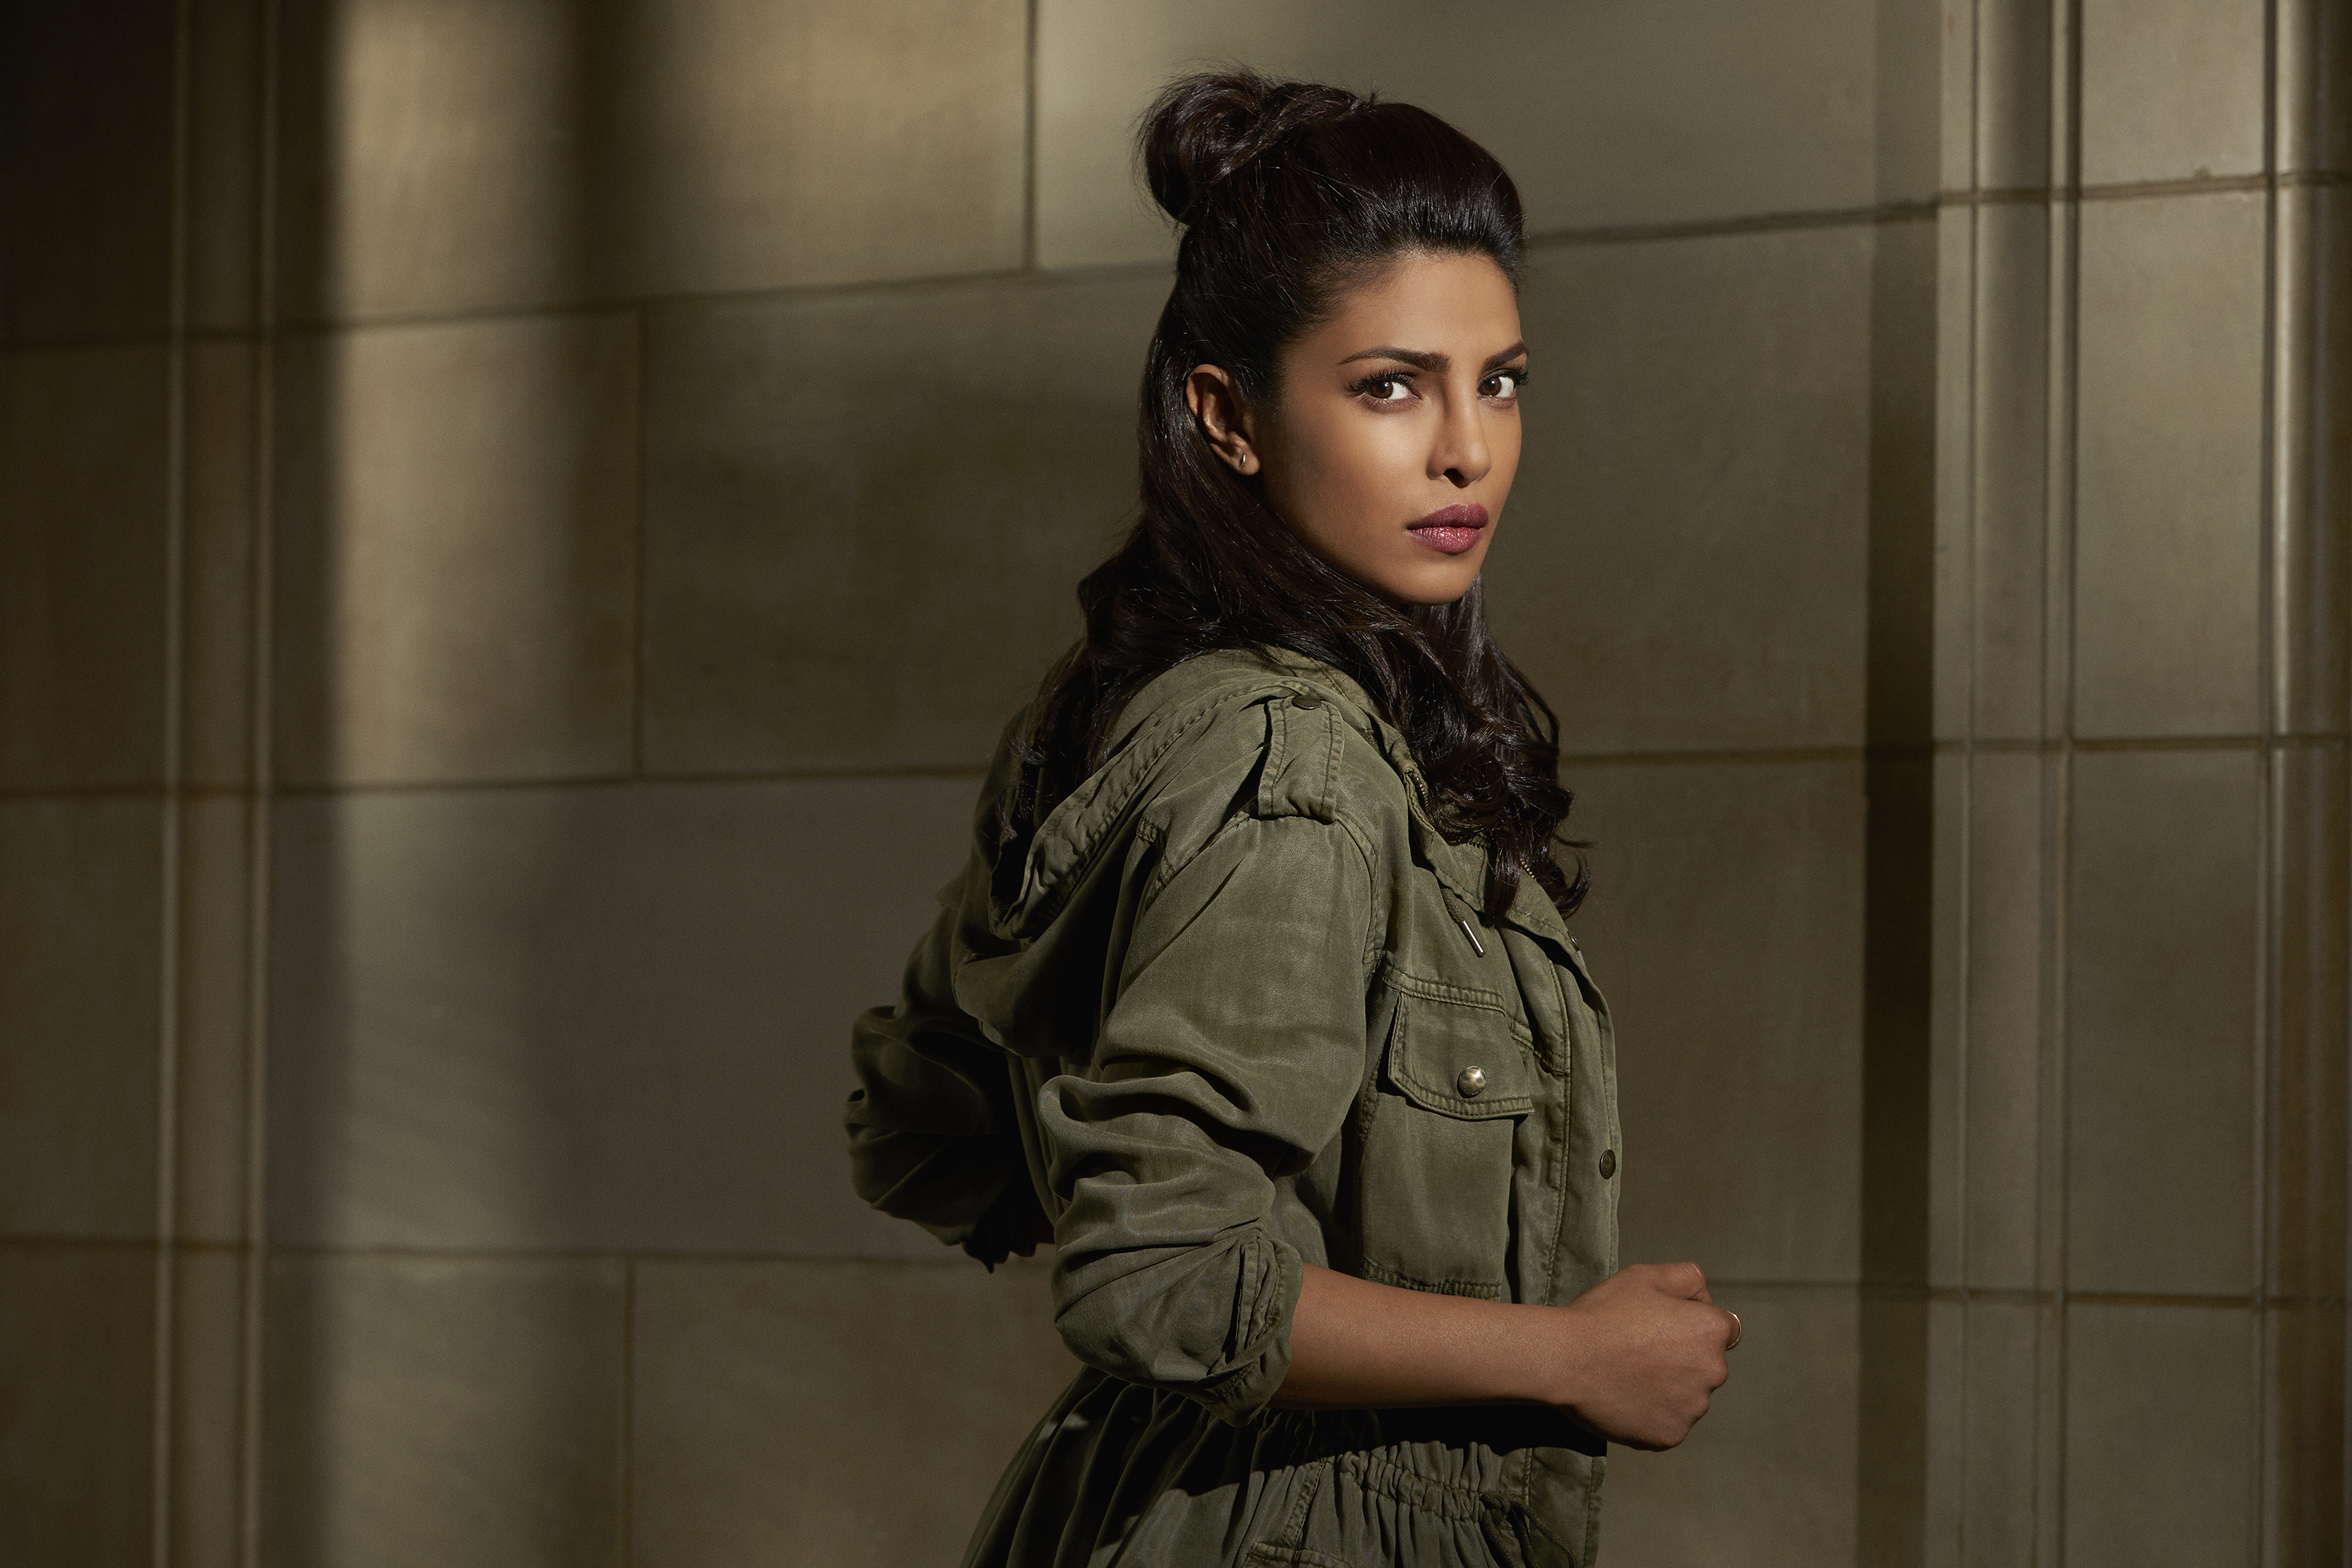 Priyanka Chopra faces the flak for Hindu terror plot on 'Quantico'